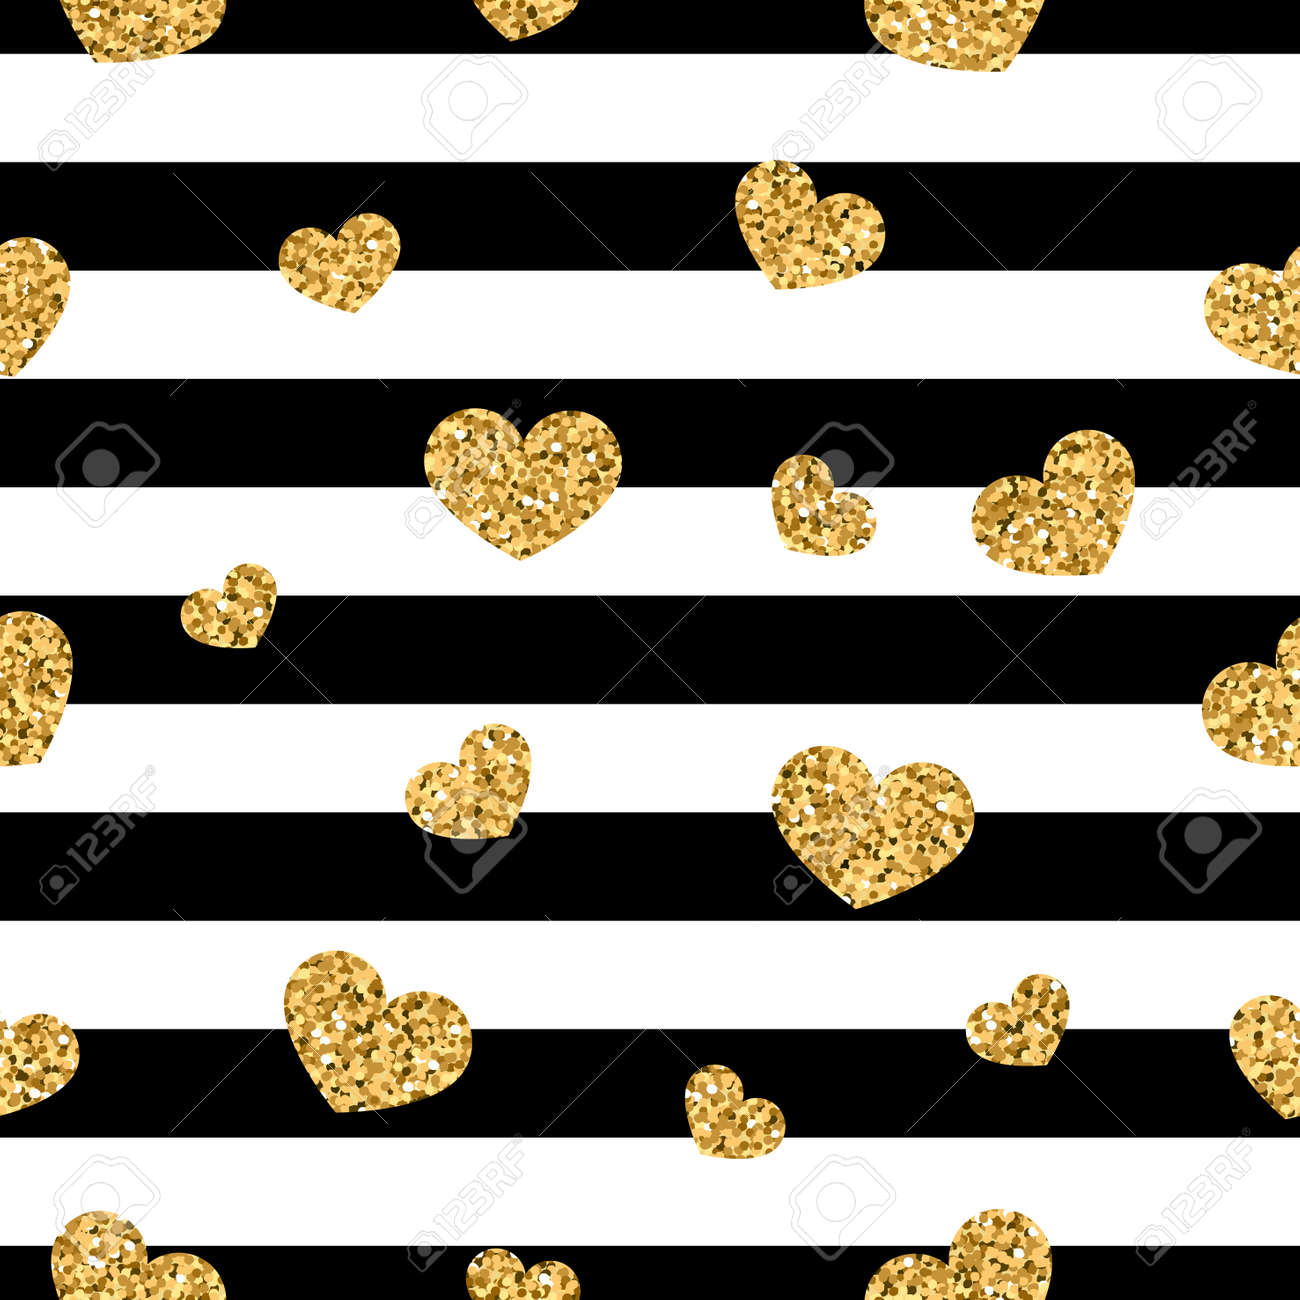 Gold Heart Seamless Pattern On Black And White Stripes Background Royalty Free Cliparts Vectors And Stock Illustration Image 97619147